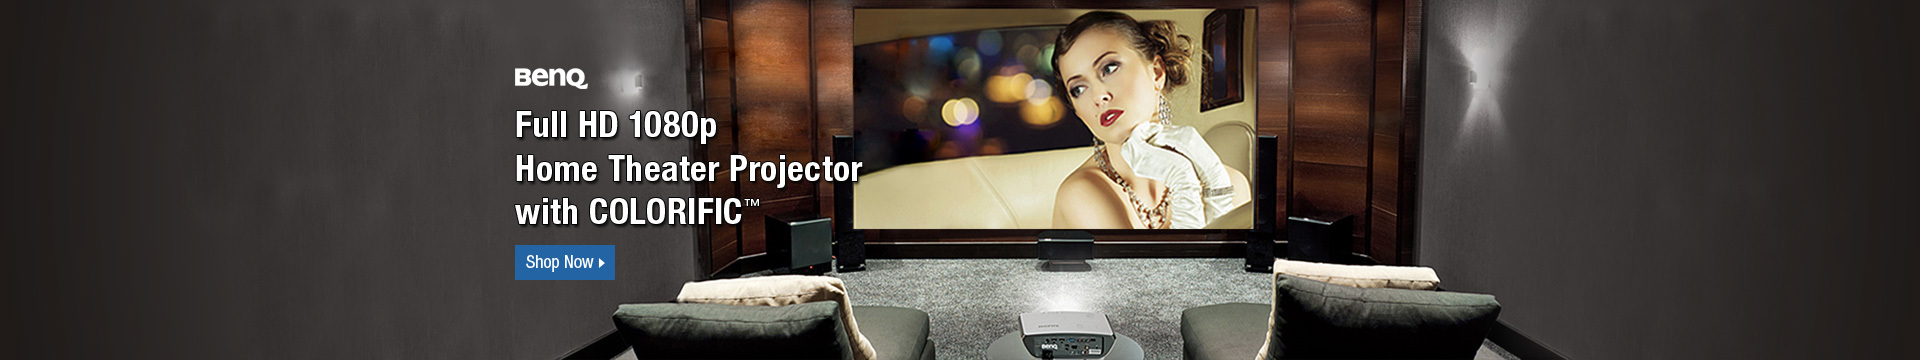 Full HD 1080 P Home Theater Projector with Colorific